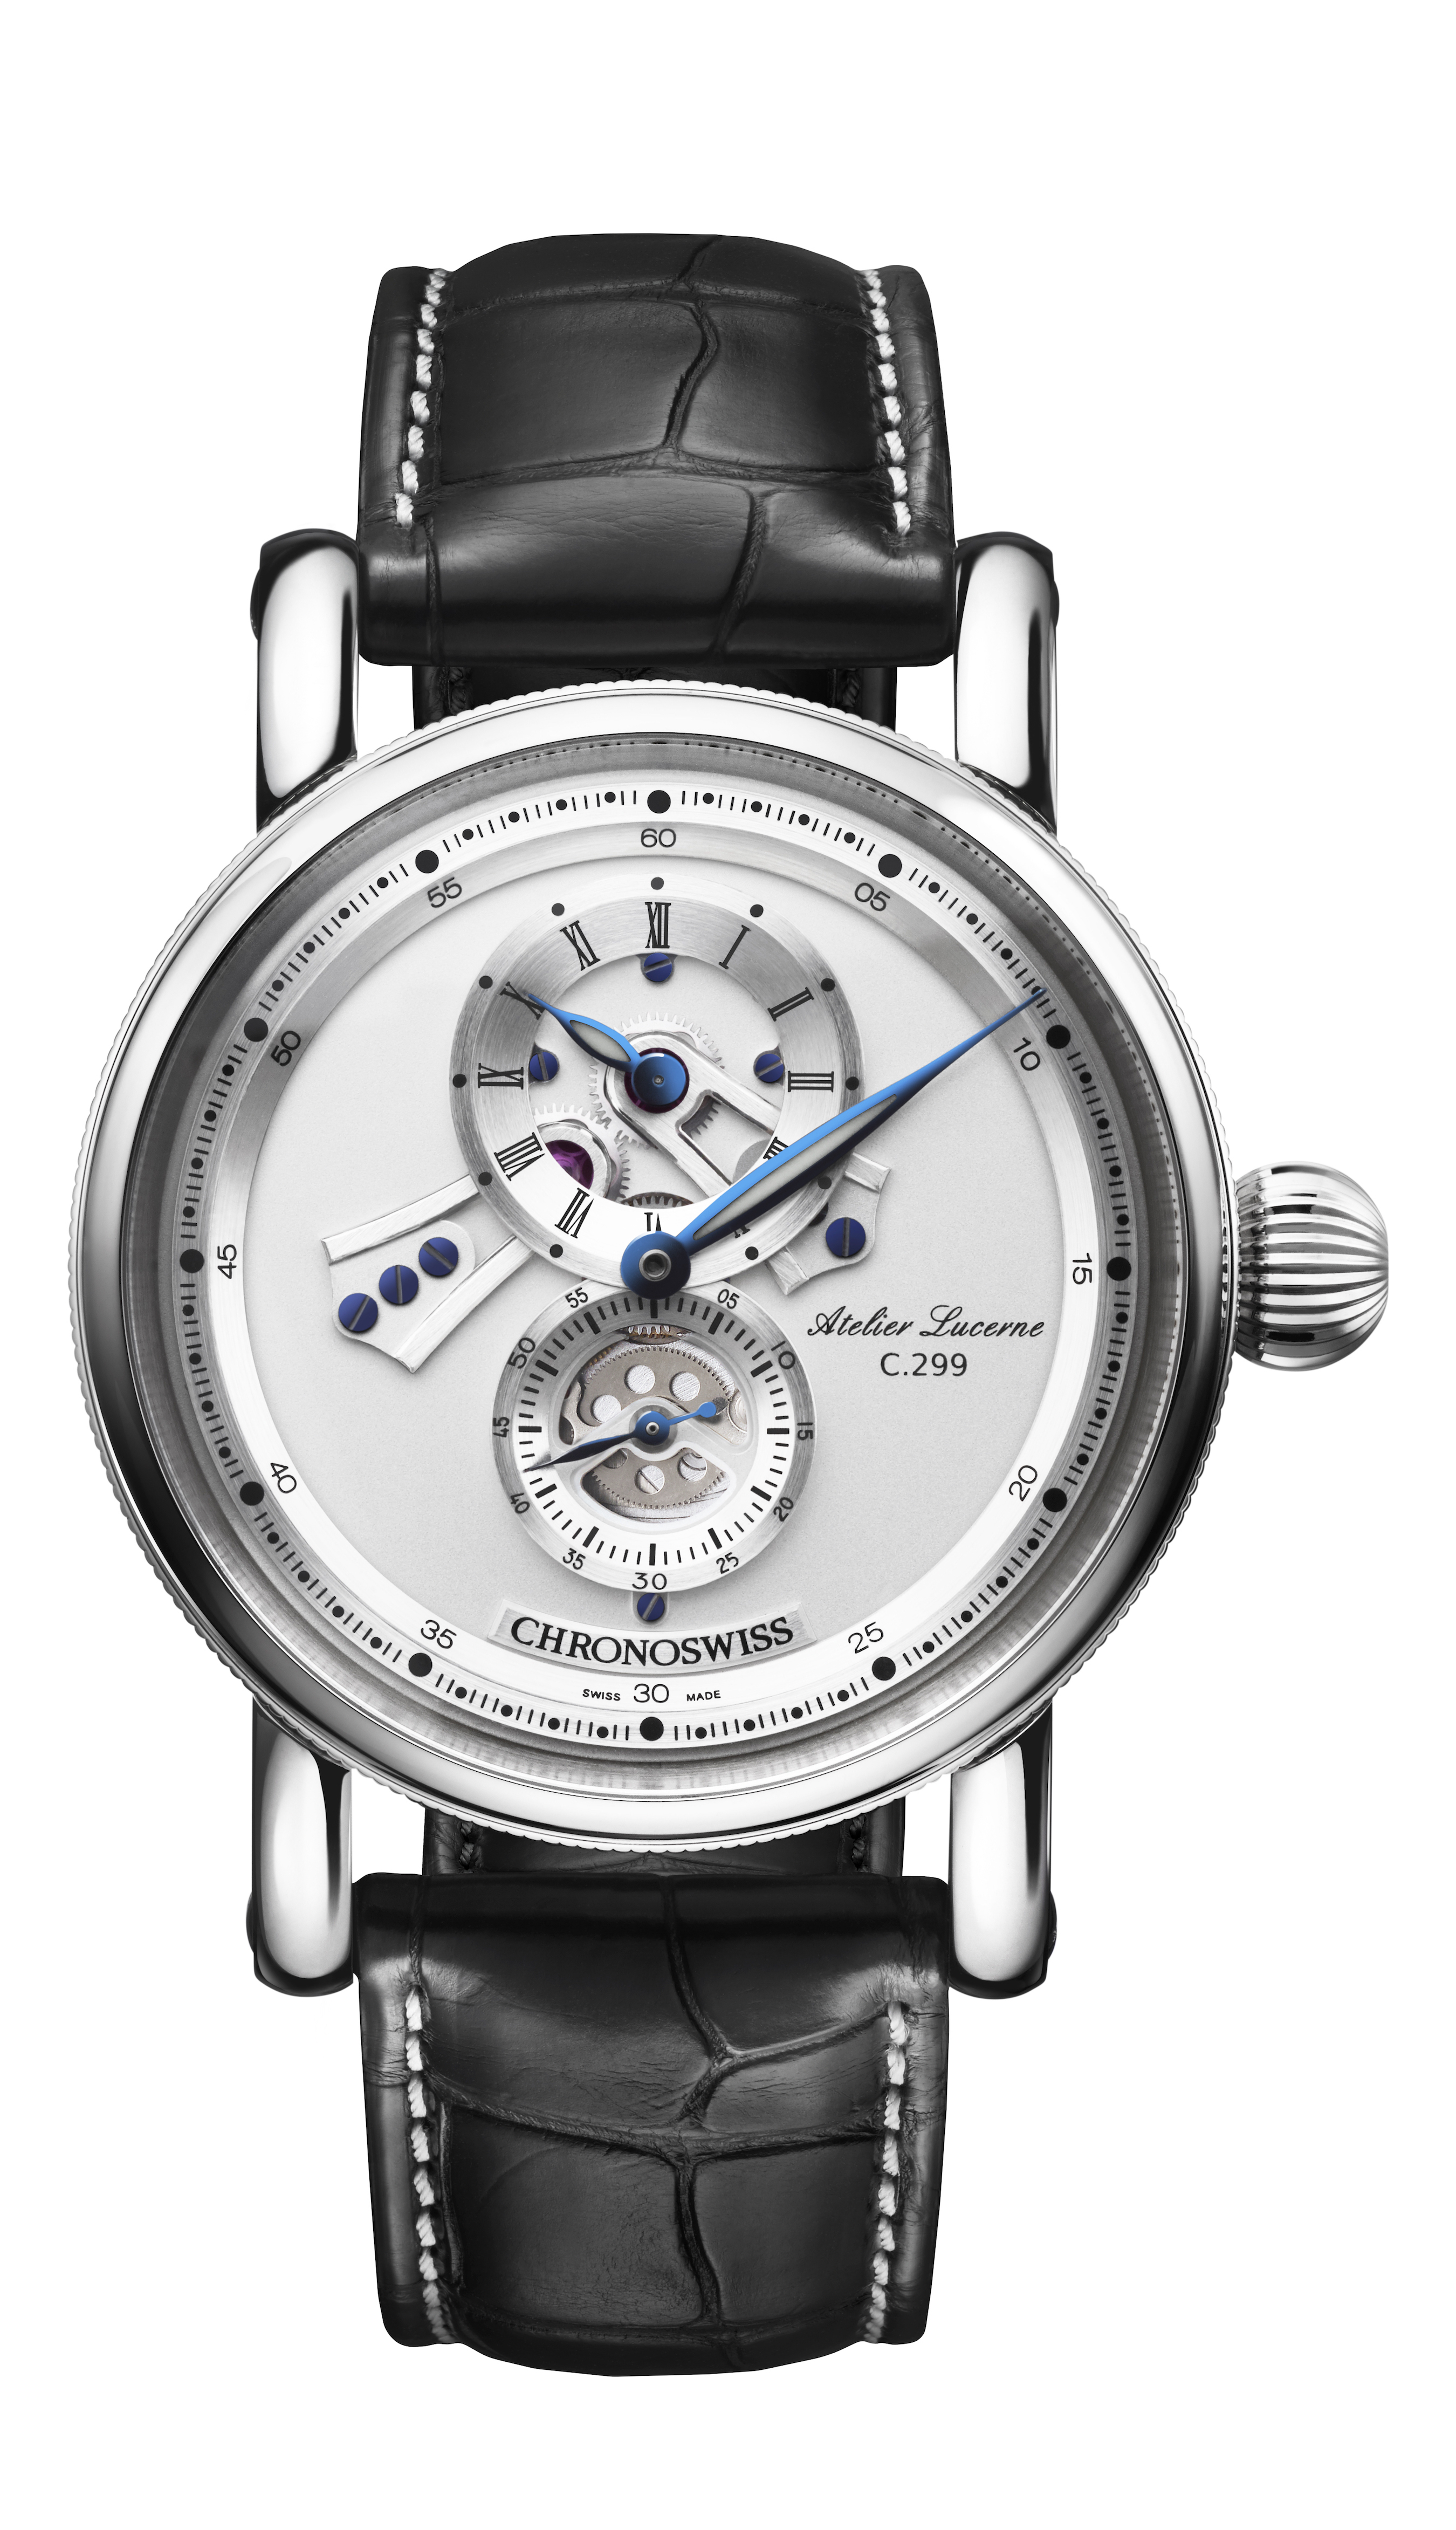 Chronoswiss Flying Regulator Open Gear watch retails for just about $6,500.